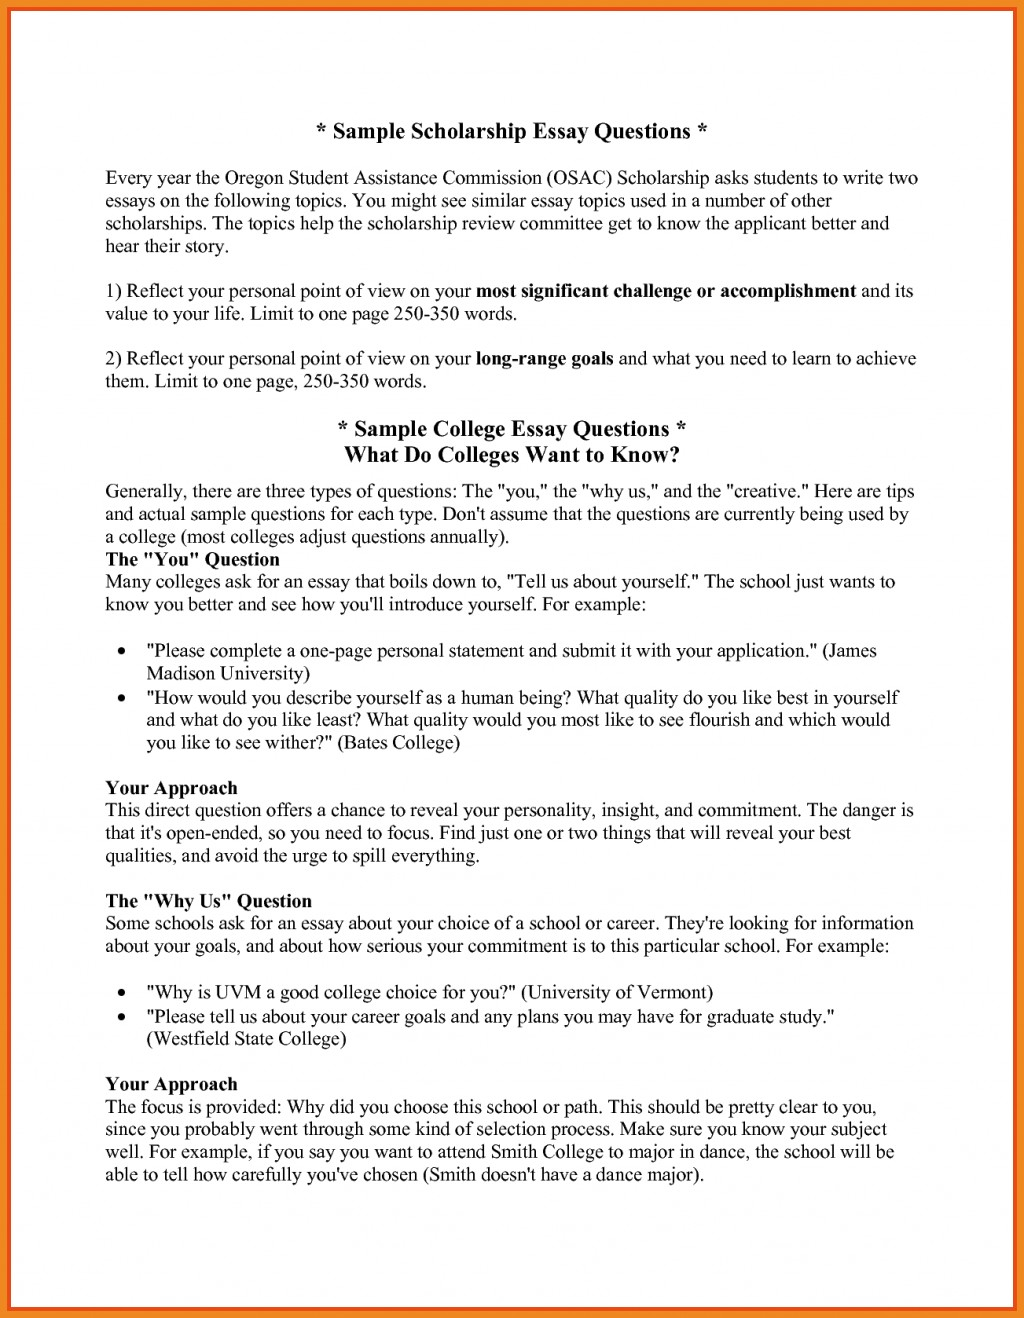 003 College Scholarship Essay Filename Fix Ablez How Will Help Achieve Your Goa Goals Best Prompts Template Winning Examples Large